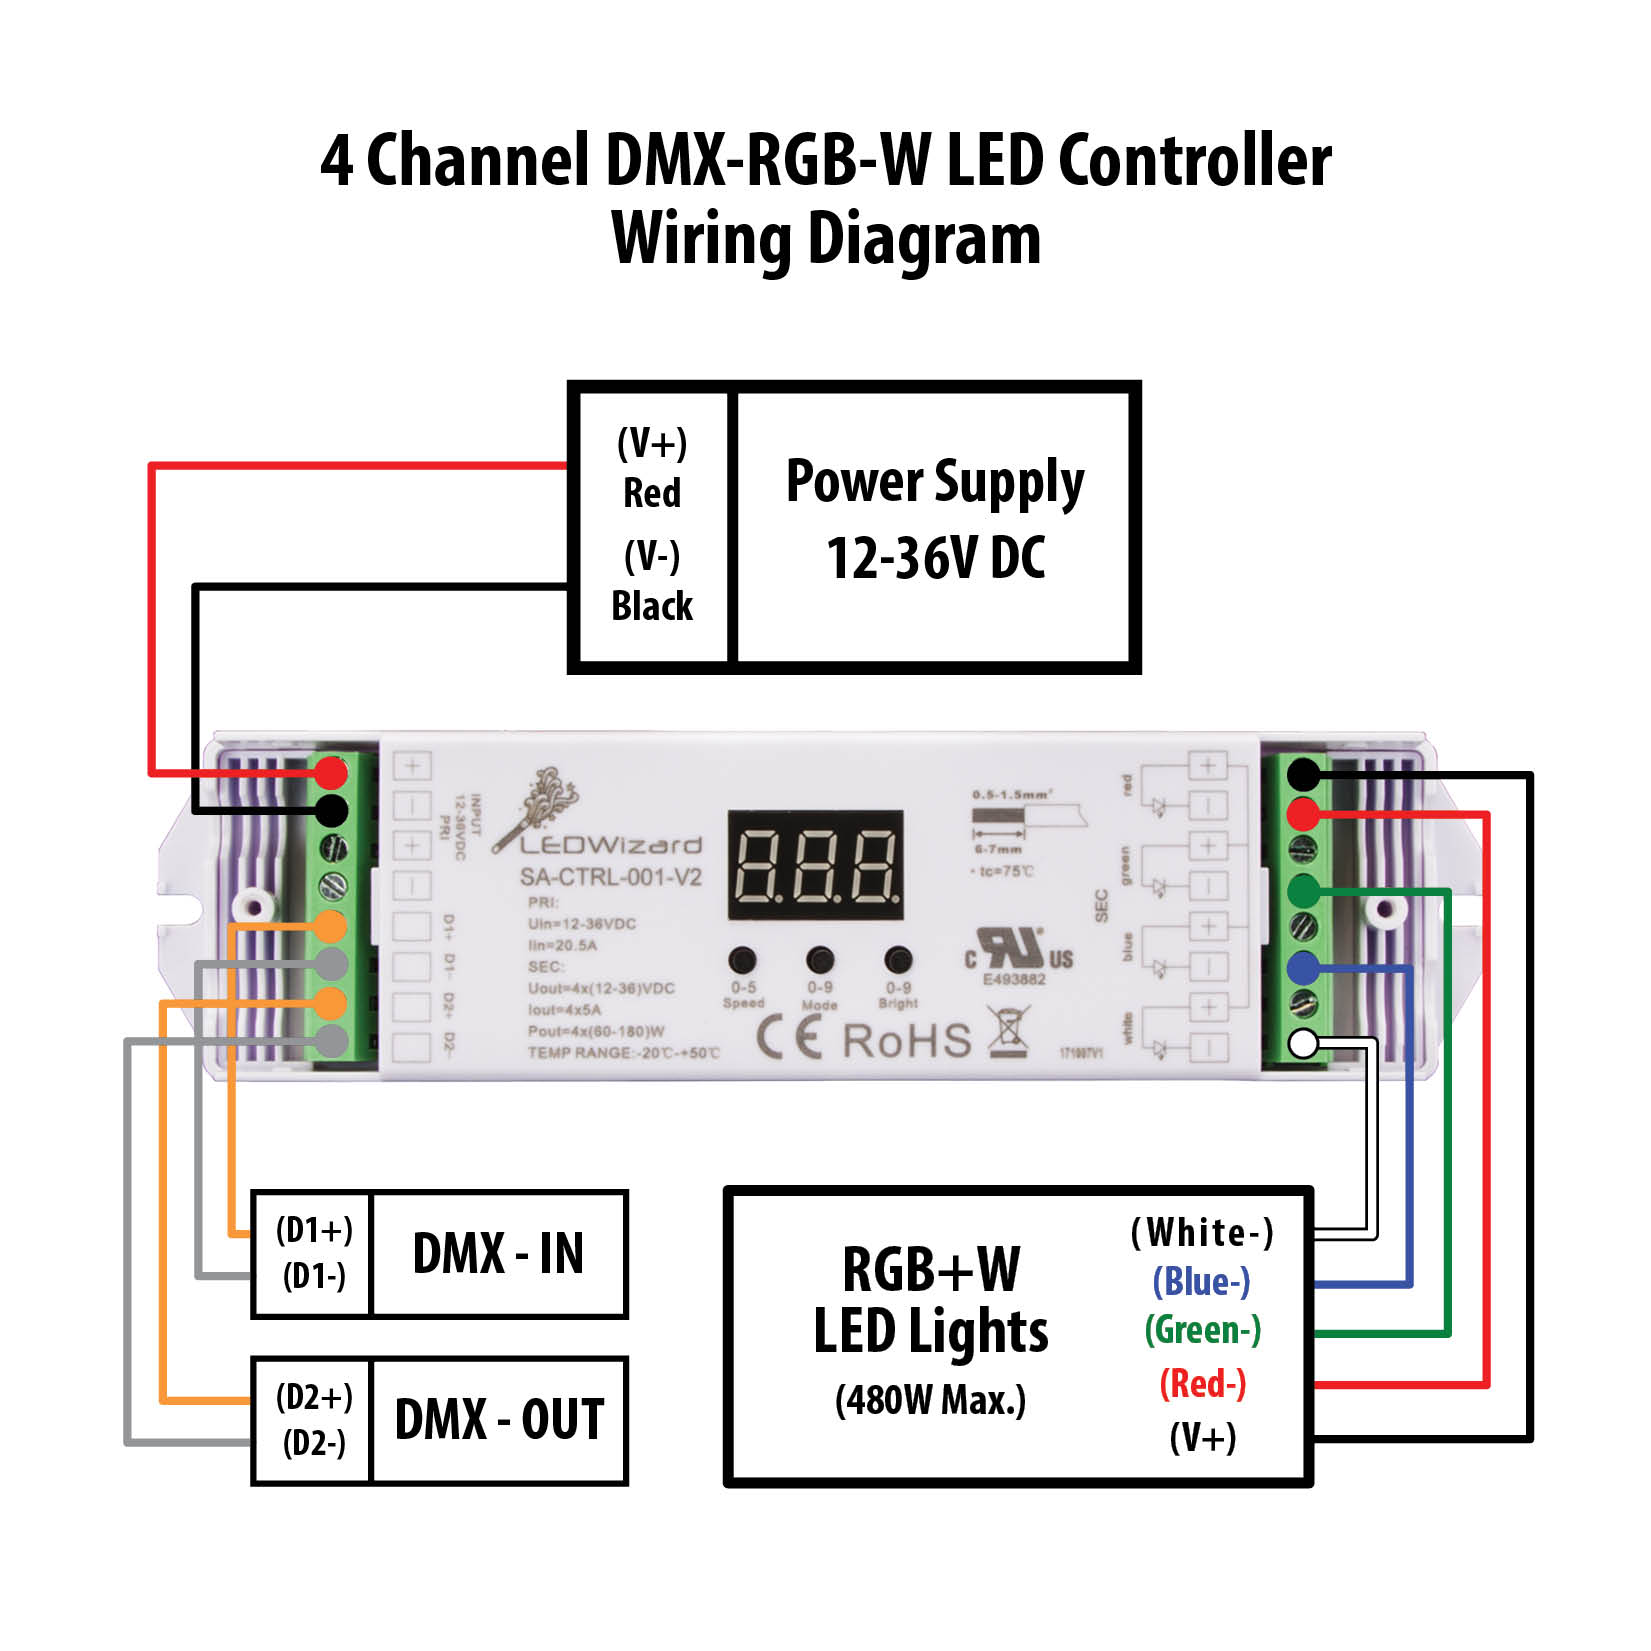 6 pin dmx wiring diagram 4 channel dmx-rgb-w led controller #3